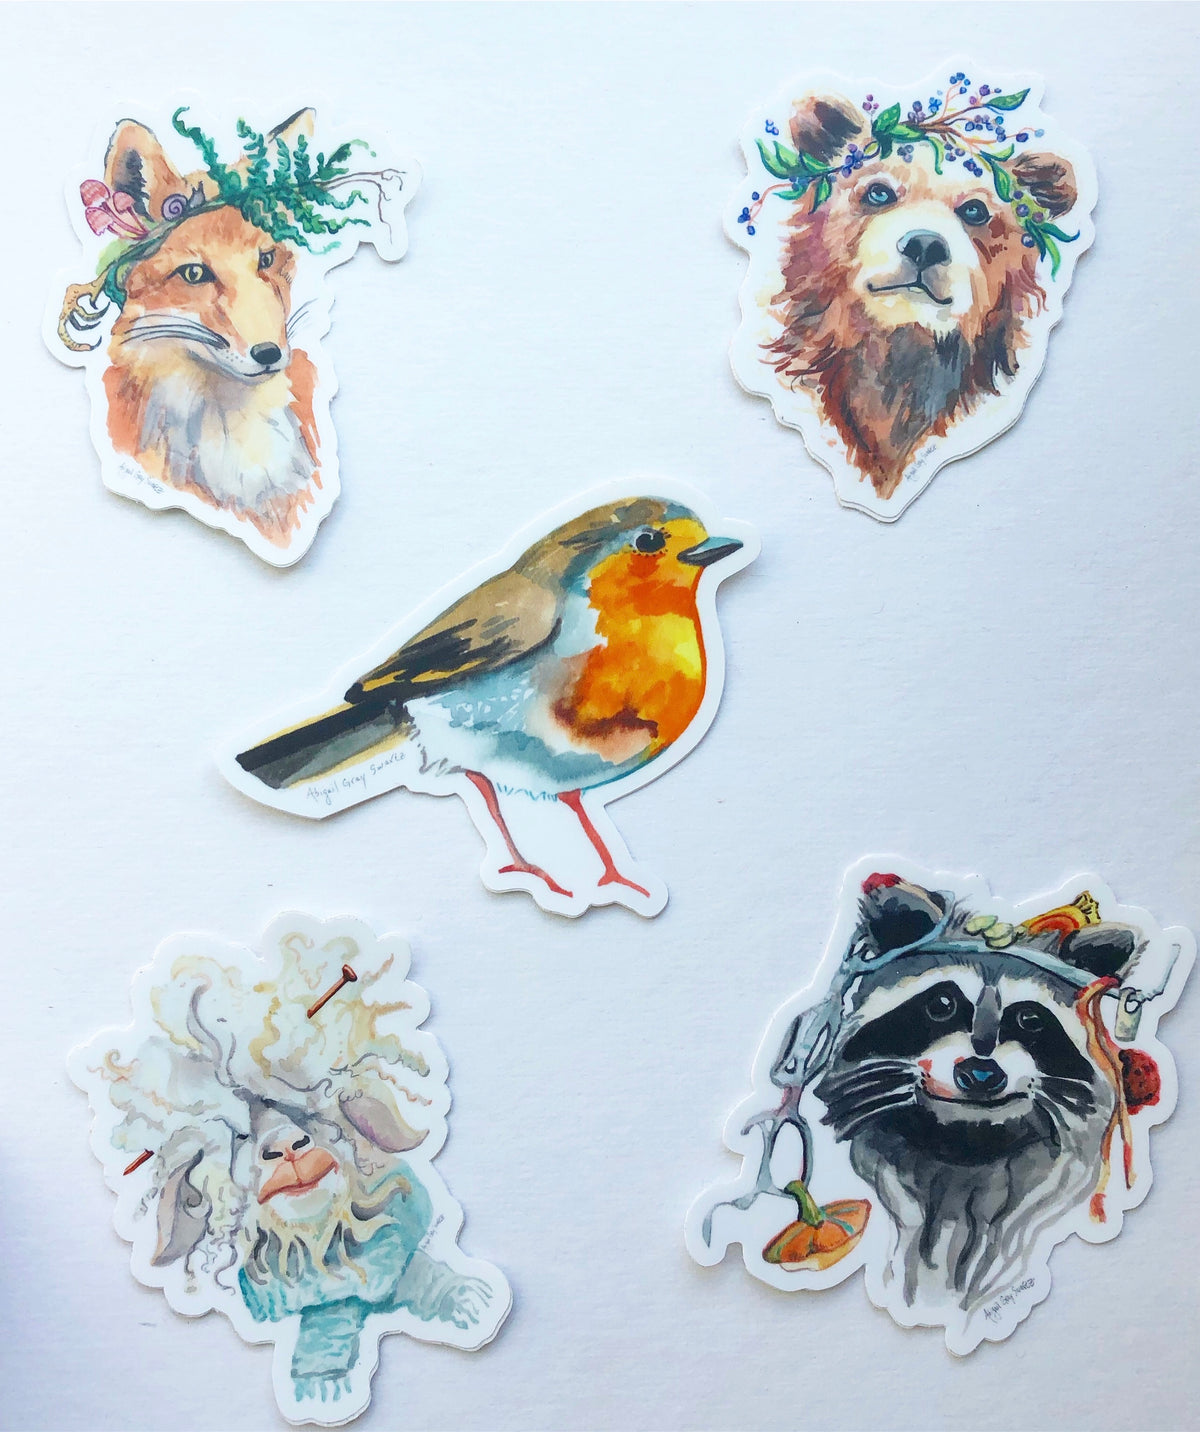 Five Animal Portrait Stickers - Bear, Sheep, Raccoon, Fox, Robin - Stickers & Magnets